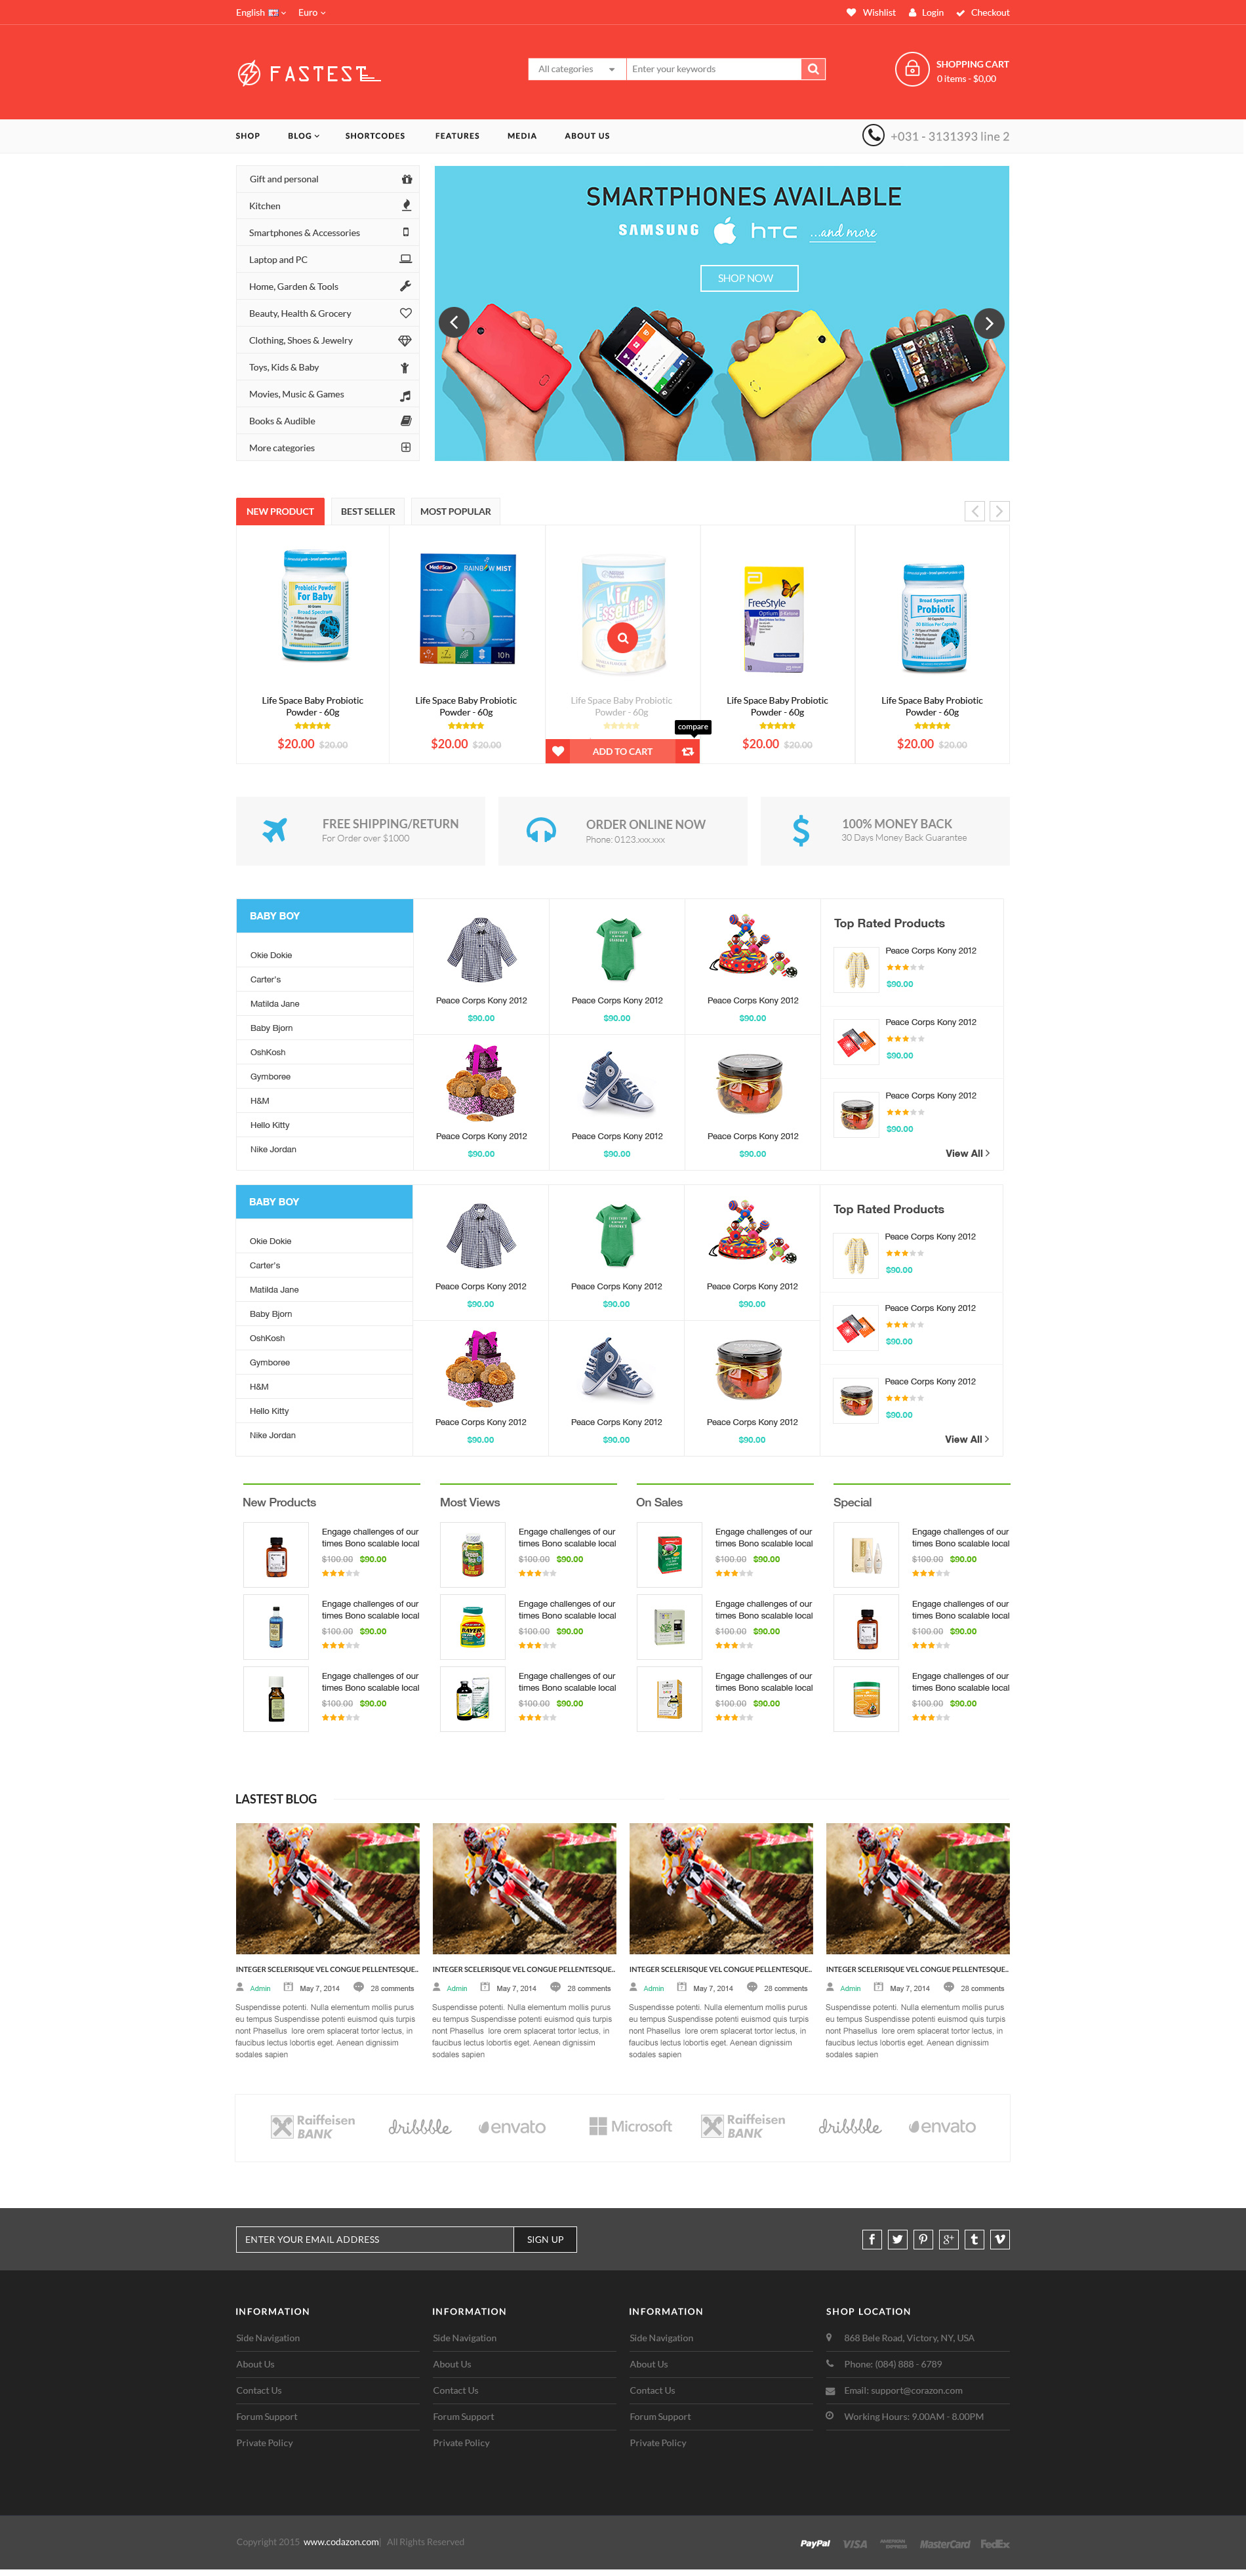 Gmail theme disappeared